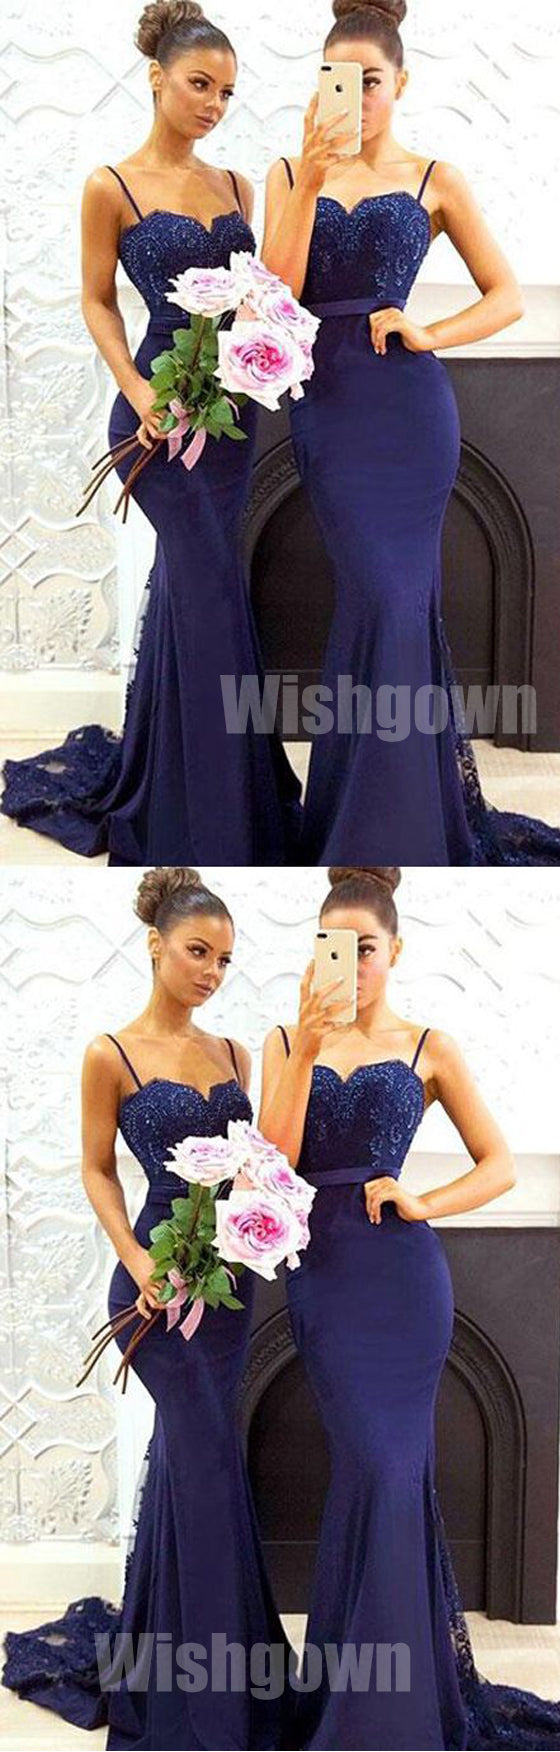 Exquisite Range Of Stylish Long Bridesmaid Dresses Wish Gown